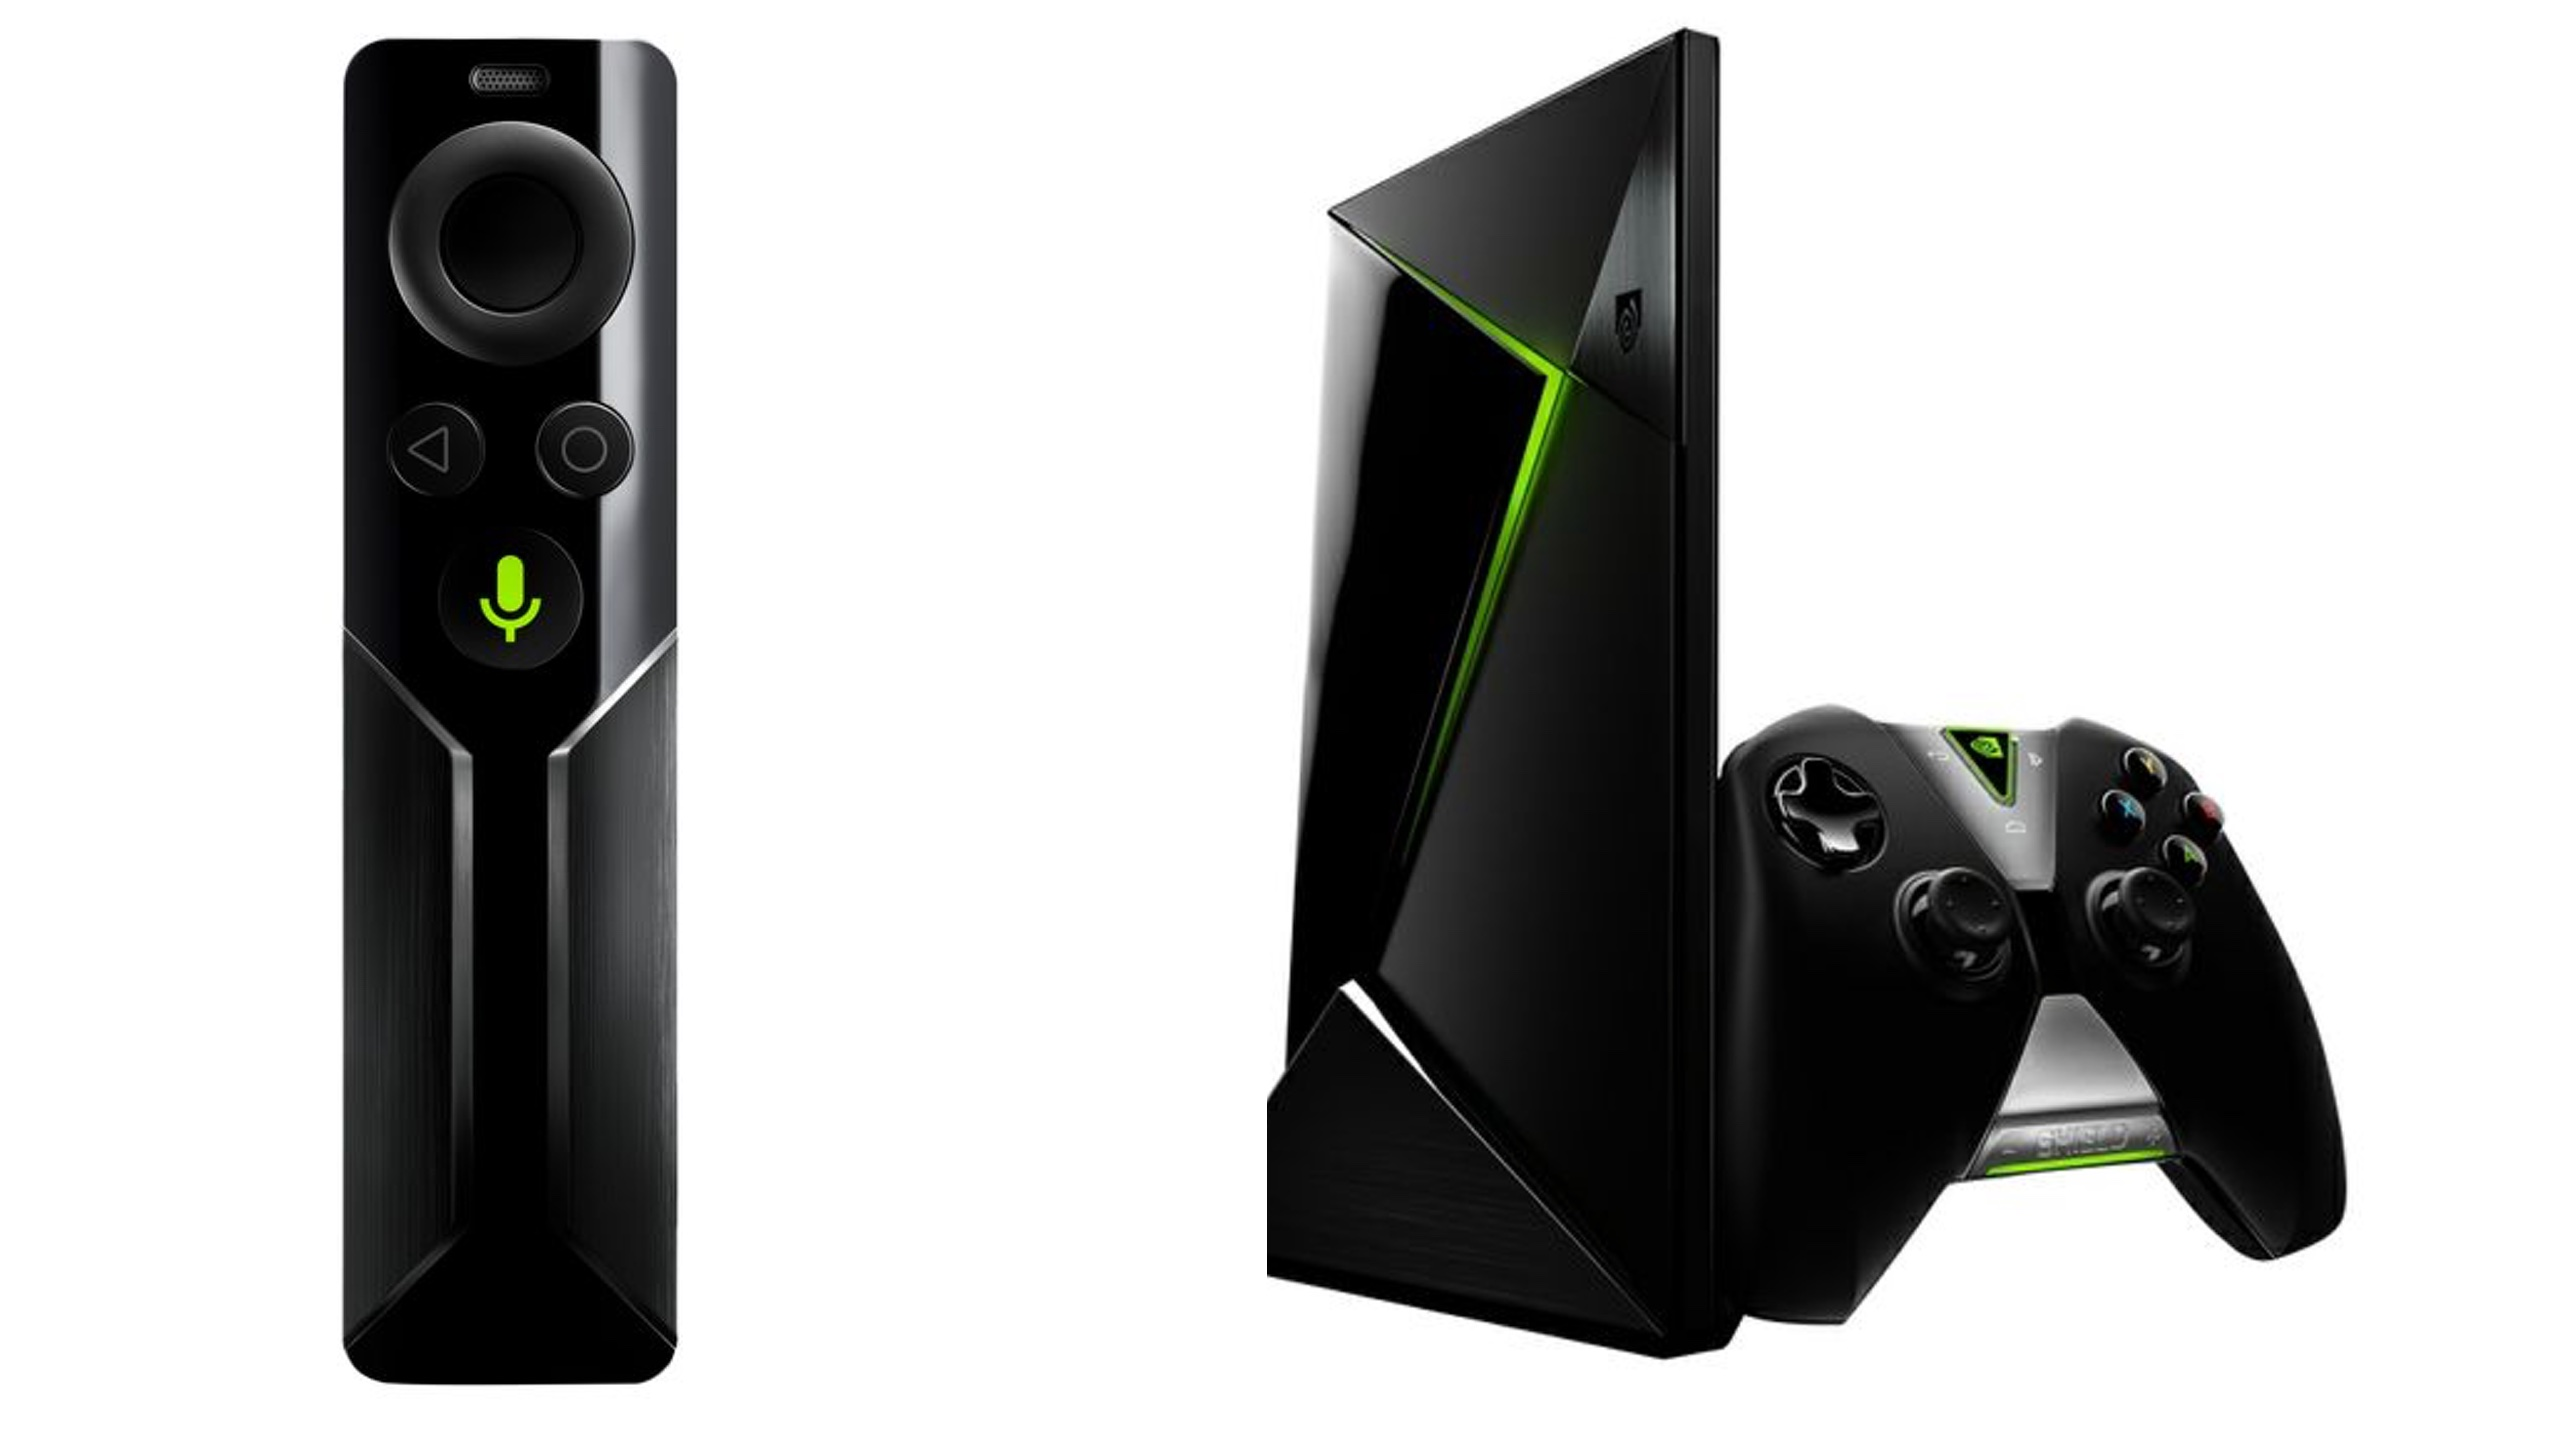 nvidia-shield-android-tv-4k